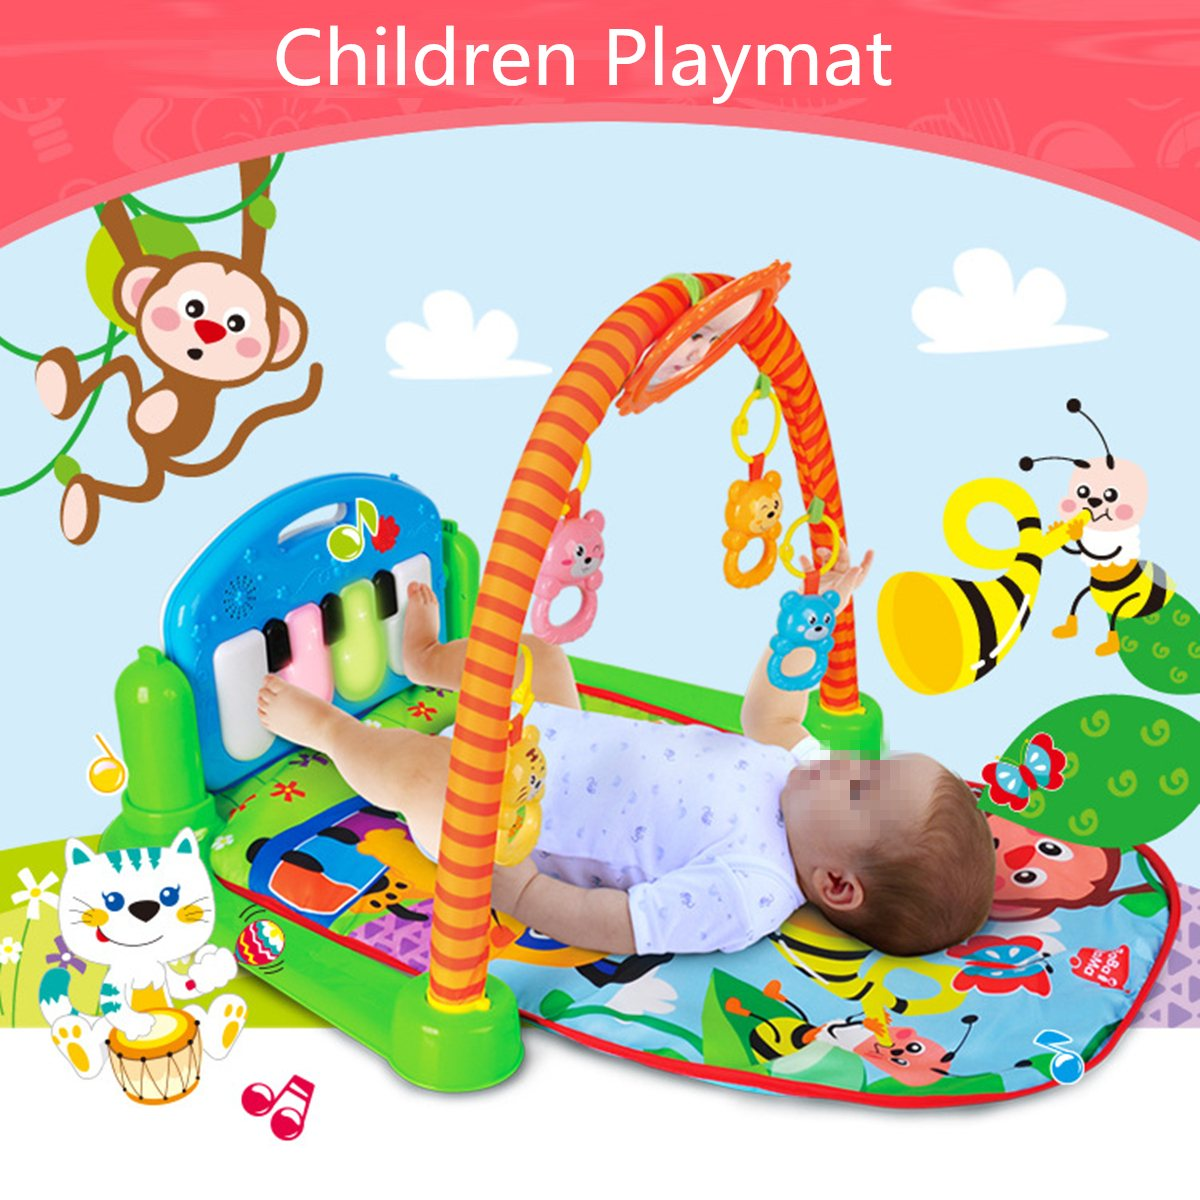 3 in 1 Rainforest Musical Lullaby Baby Activity Playmat Gym Toy Soft Play Mat Baby Infan ...